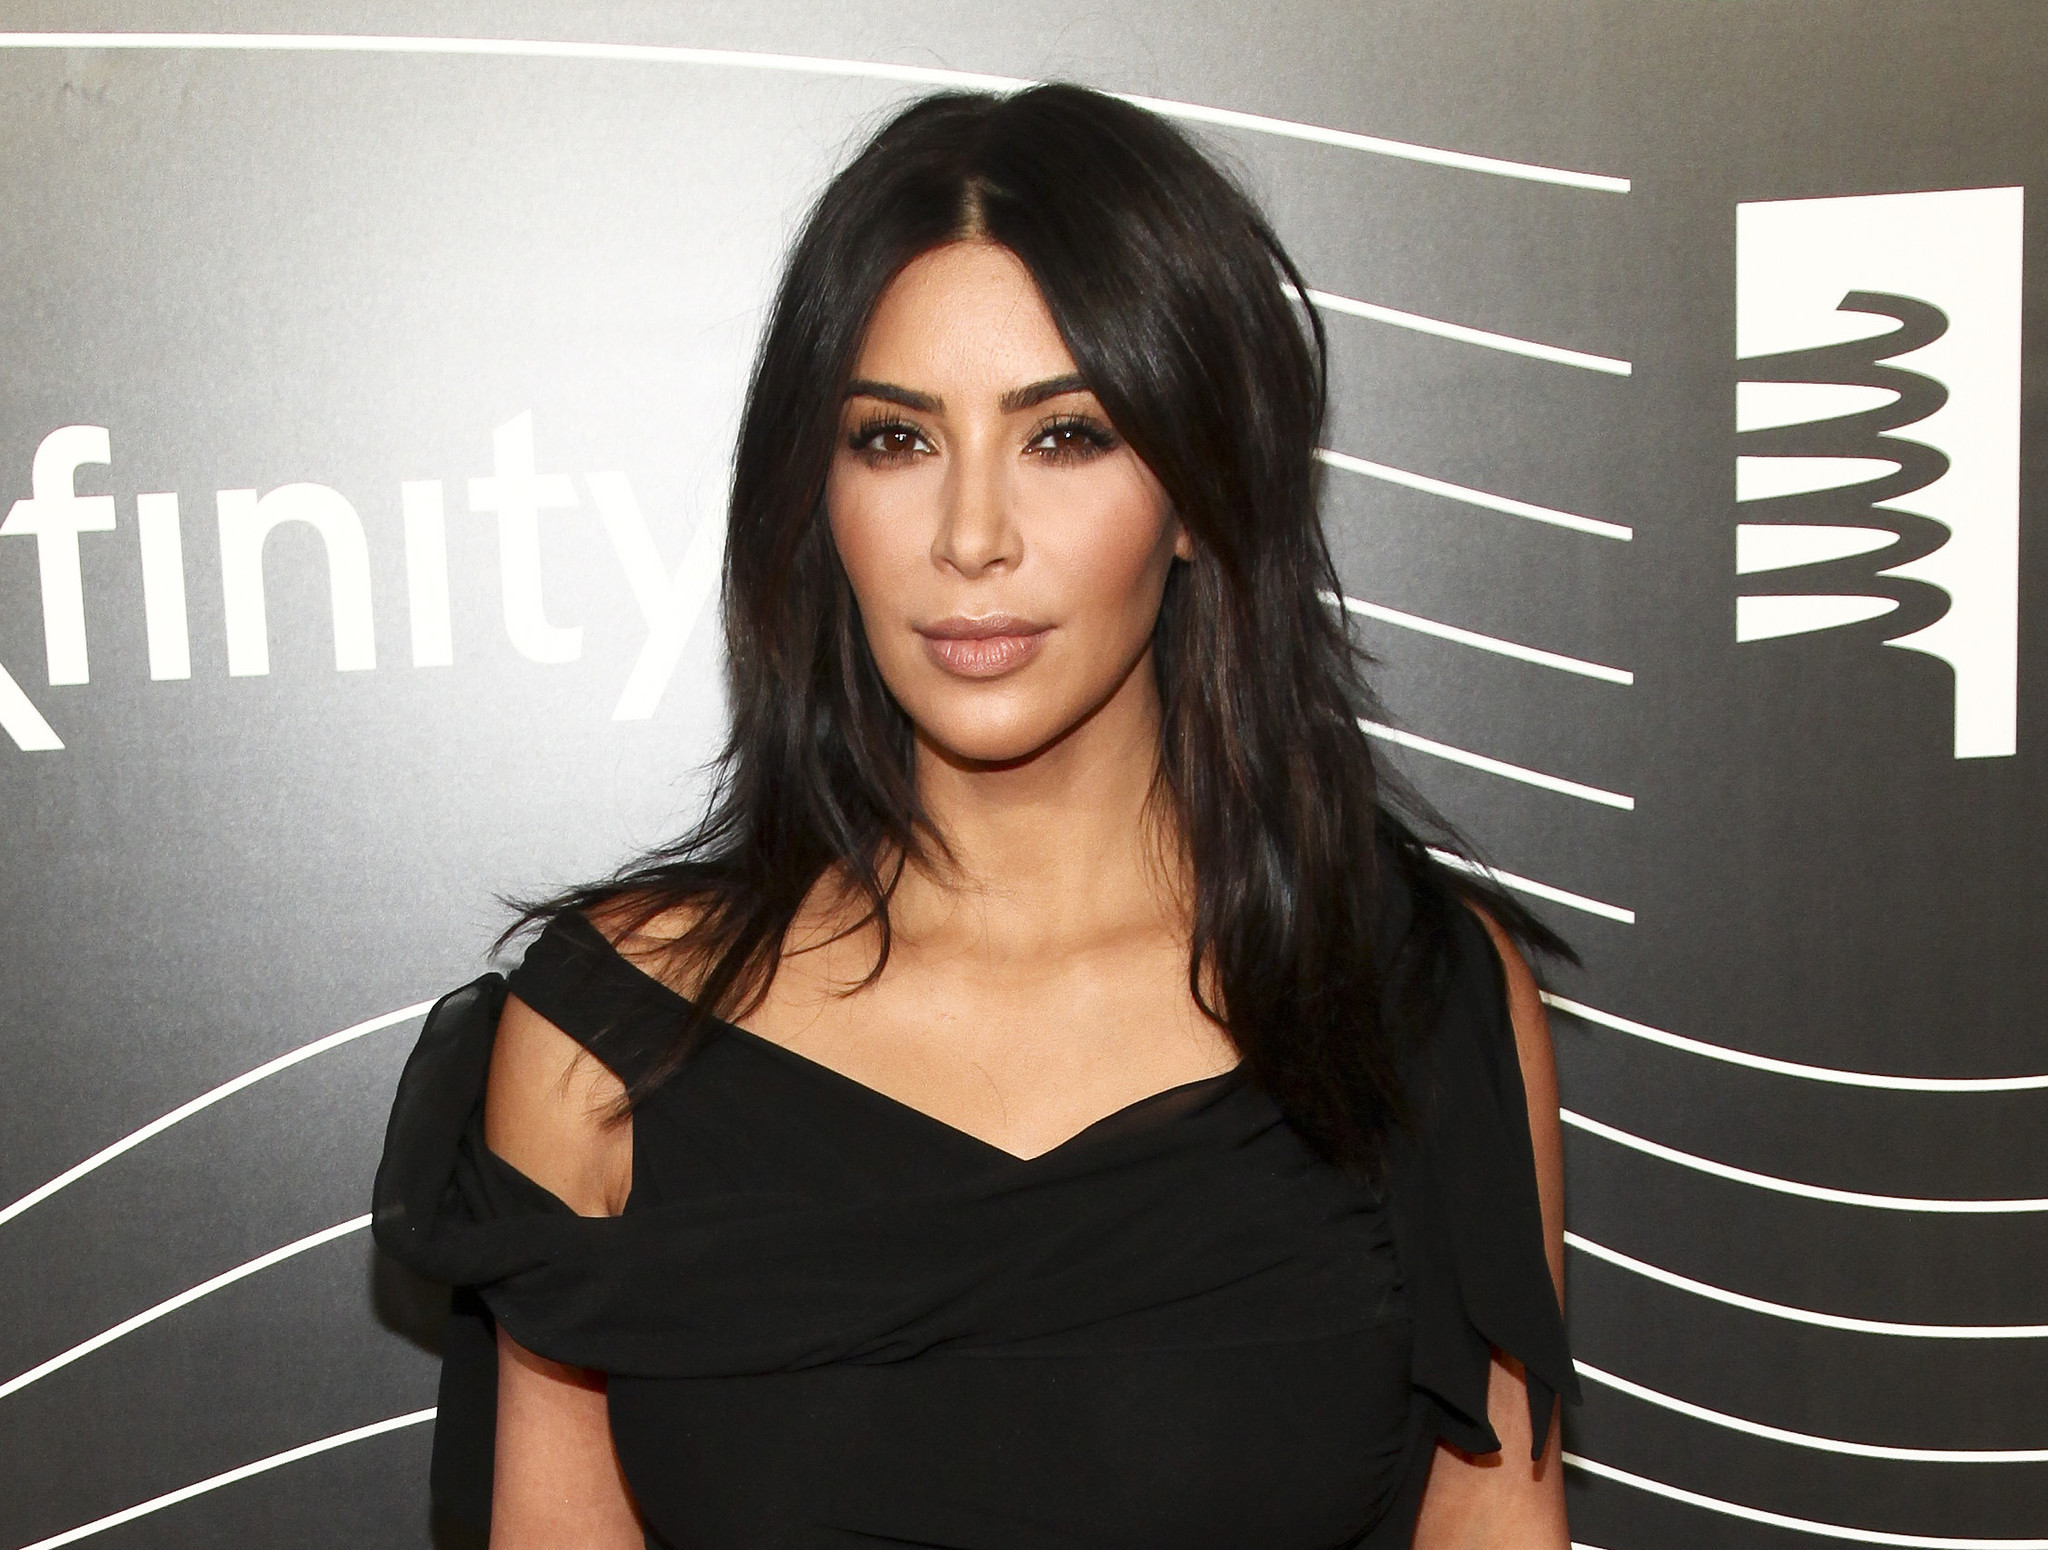 Kim Kardashian's robbery ordeal, from begging for her life to dealing with the aftermath